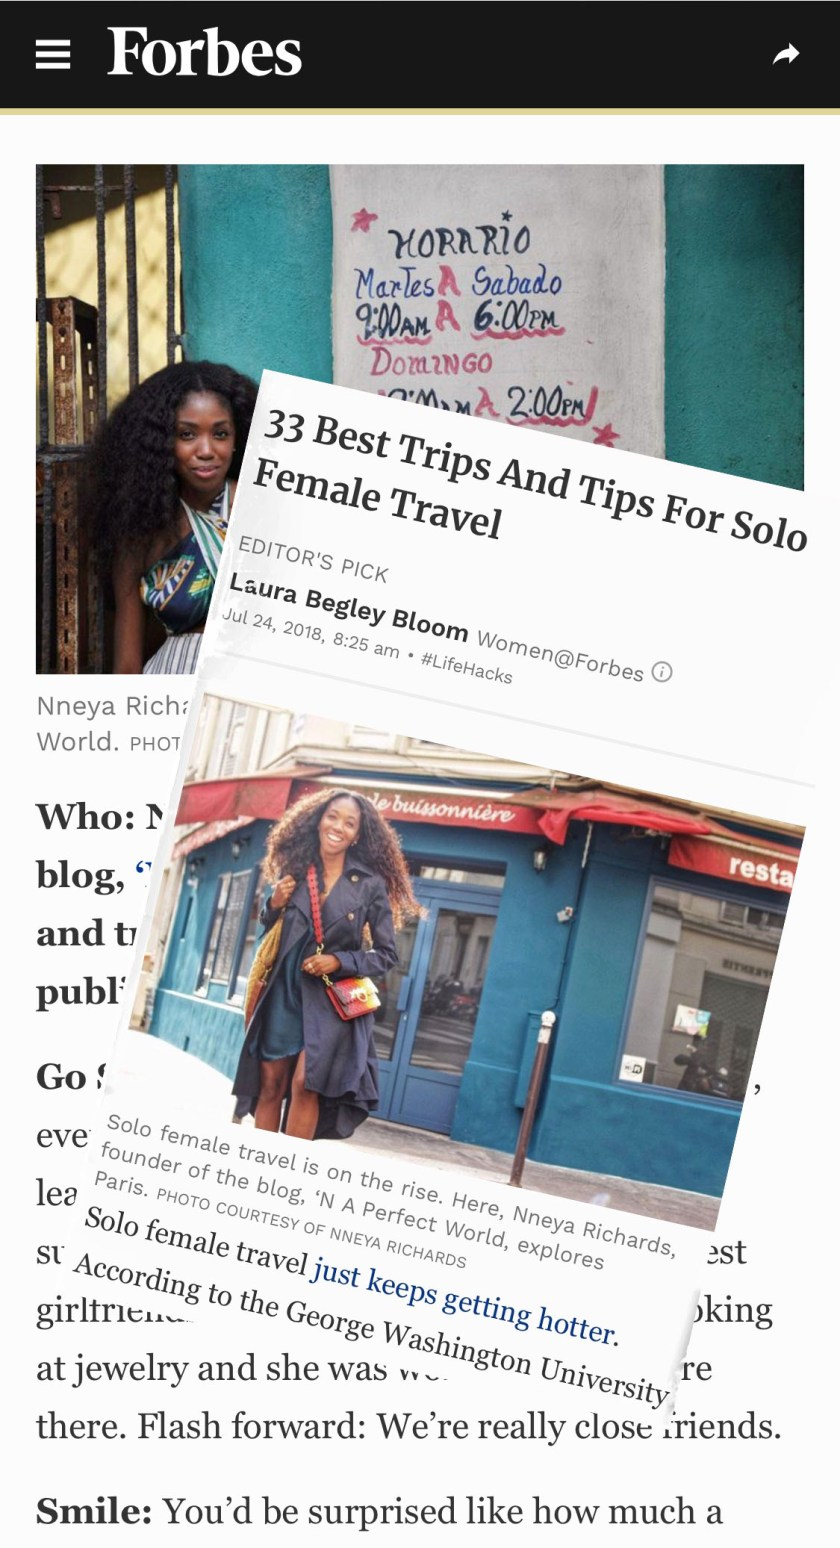 Forbes 33 Tips & Trips Composite.jpg